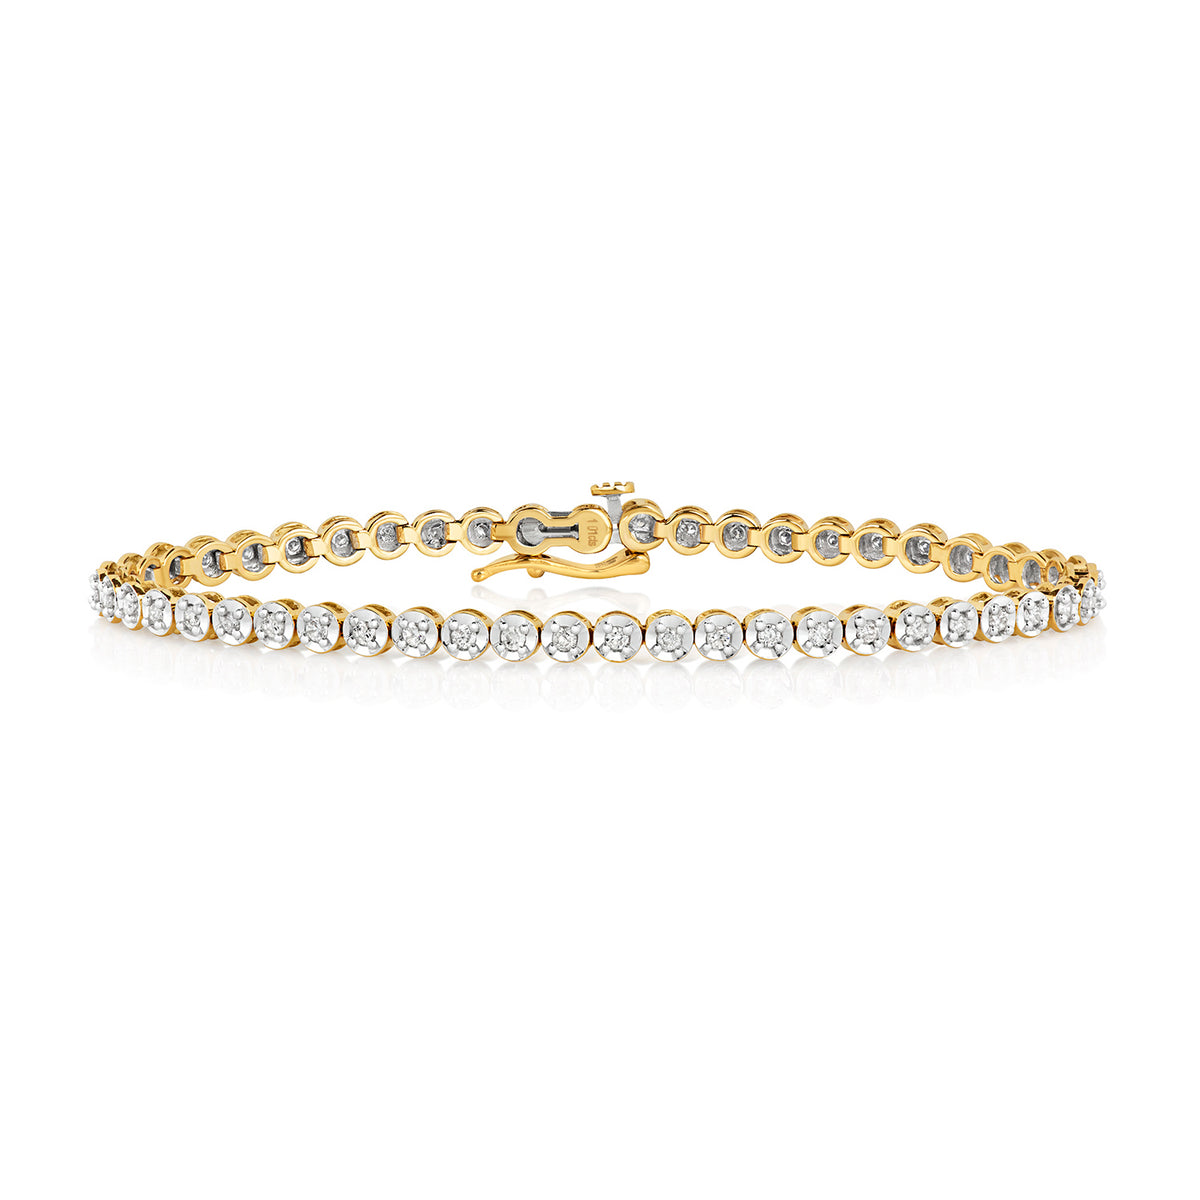 9ct Yellow Gold Diamond Tennis Bracelet 7'